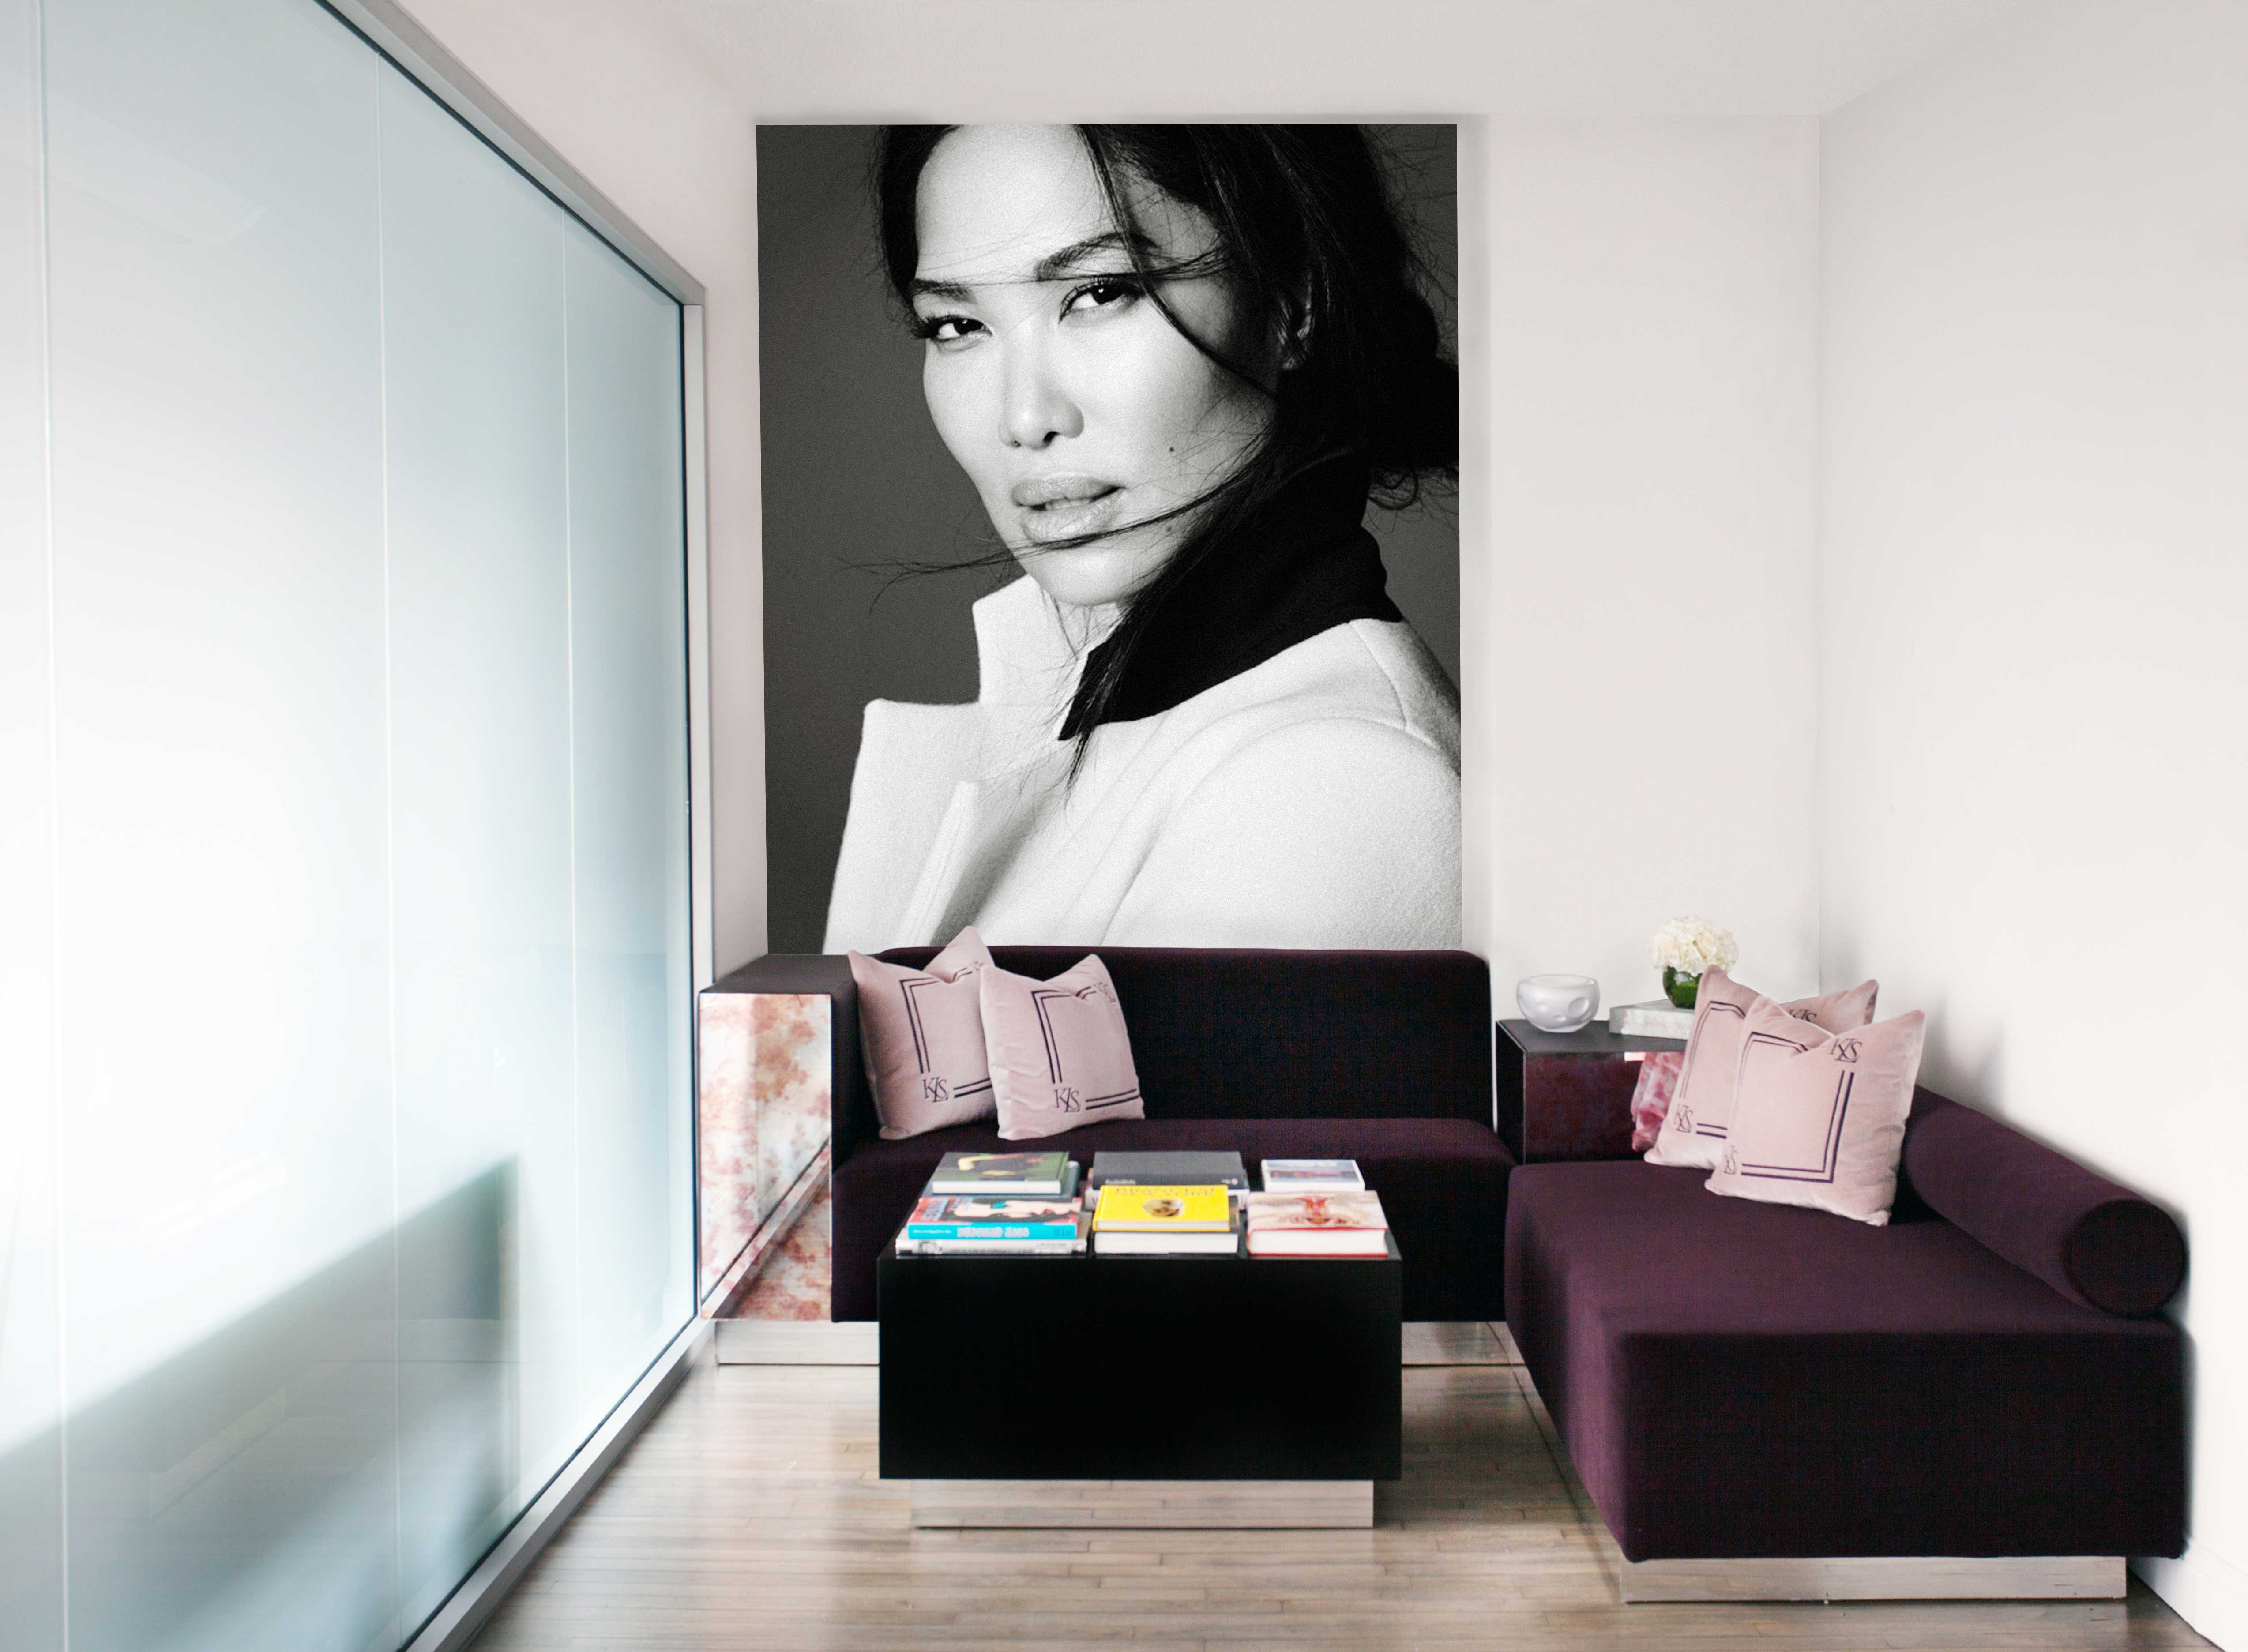 Kimora lee simmons offices by nicole fuller interiors on 1stdibs - Kimora lee simmons office ...